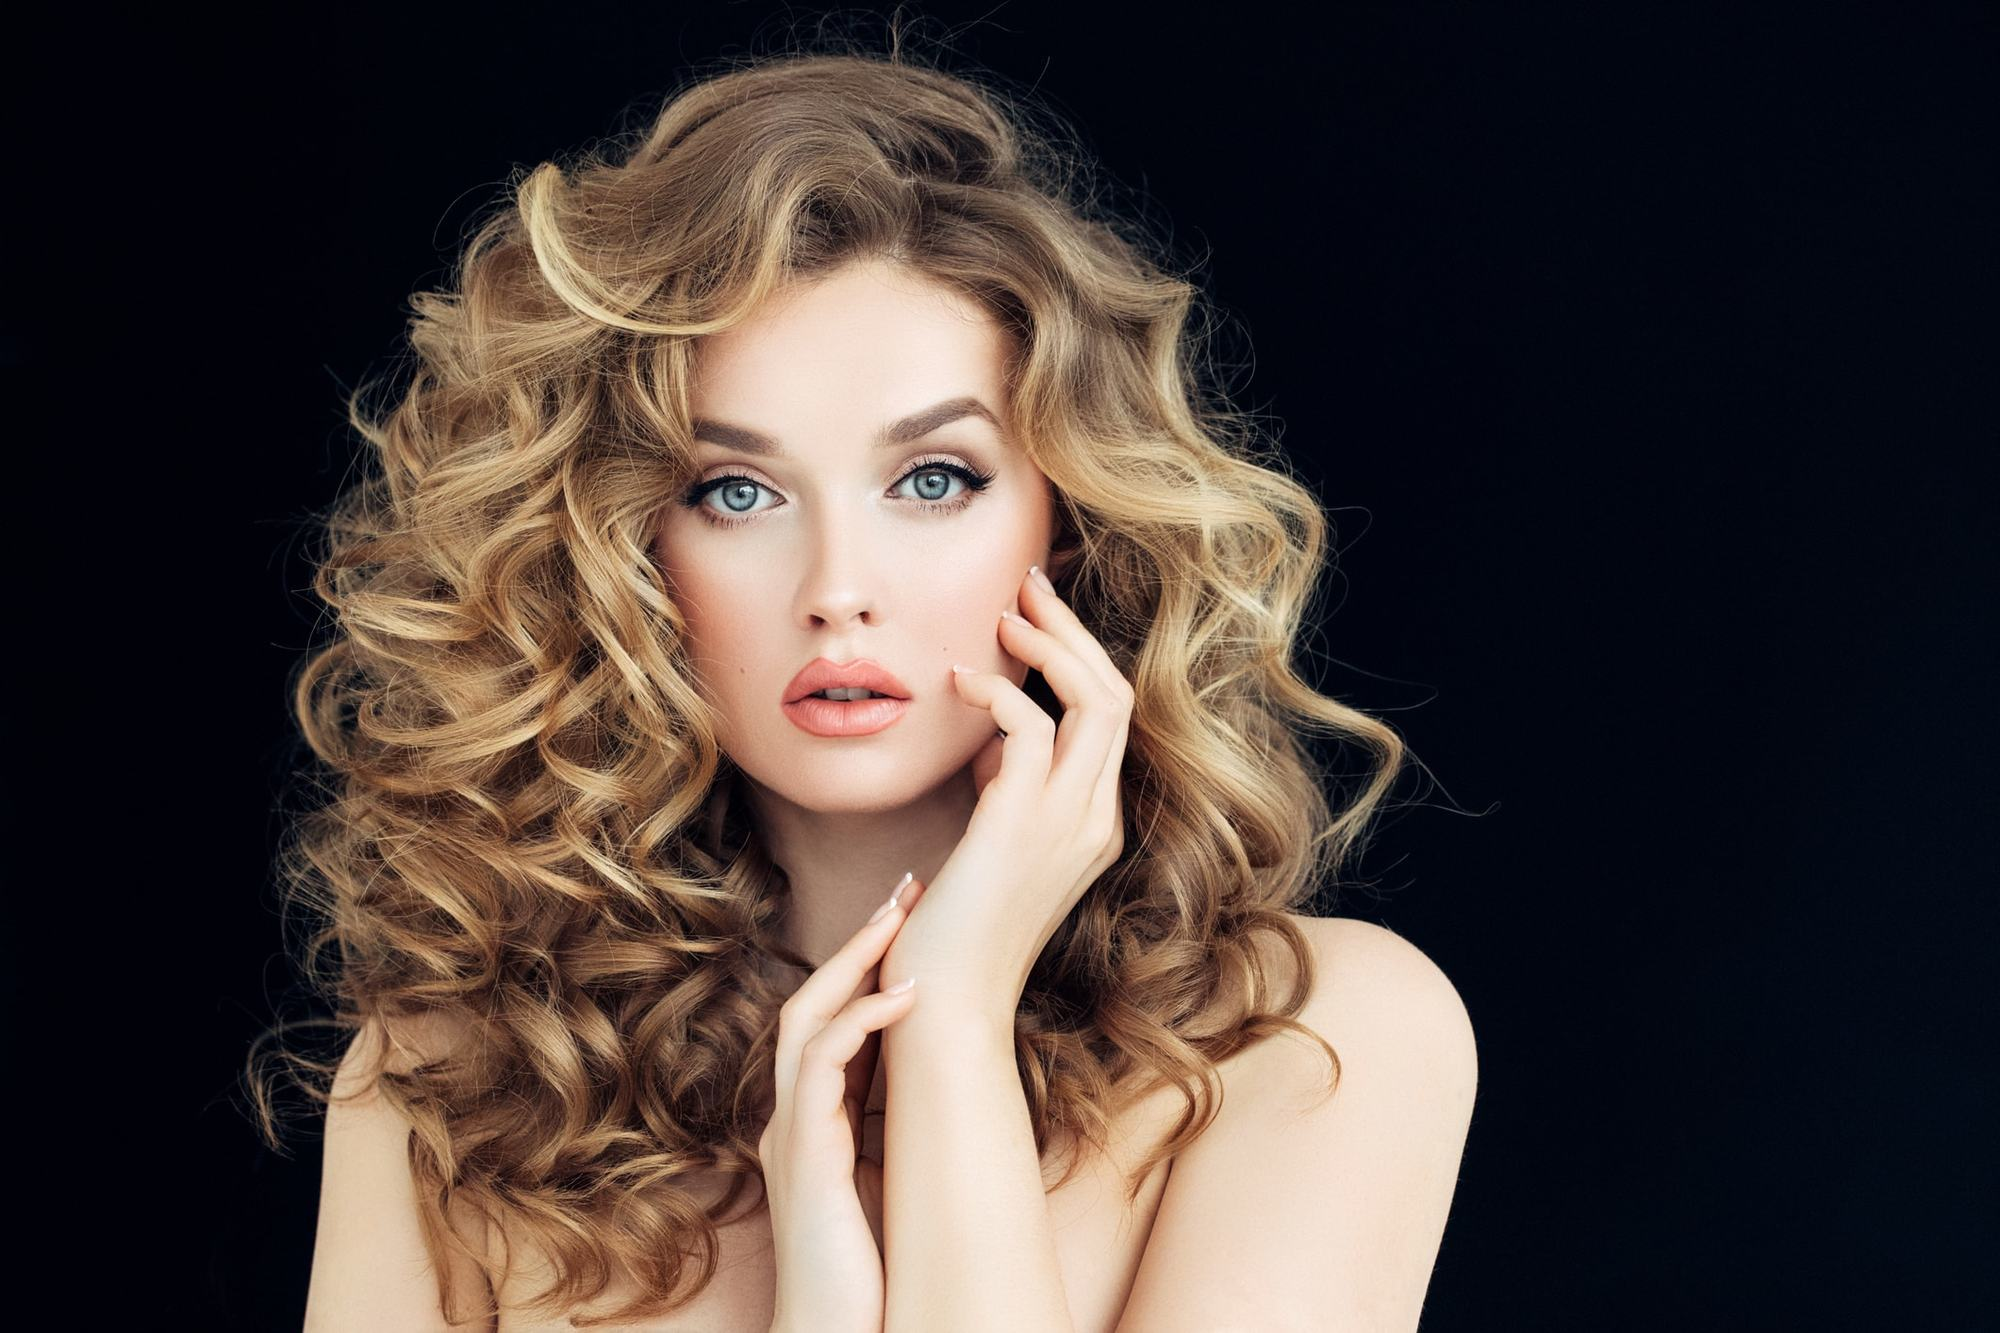 Young woman with well-made lighter hair highlights